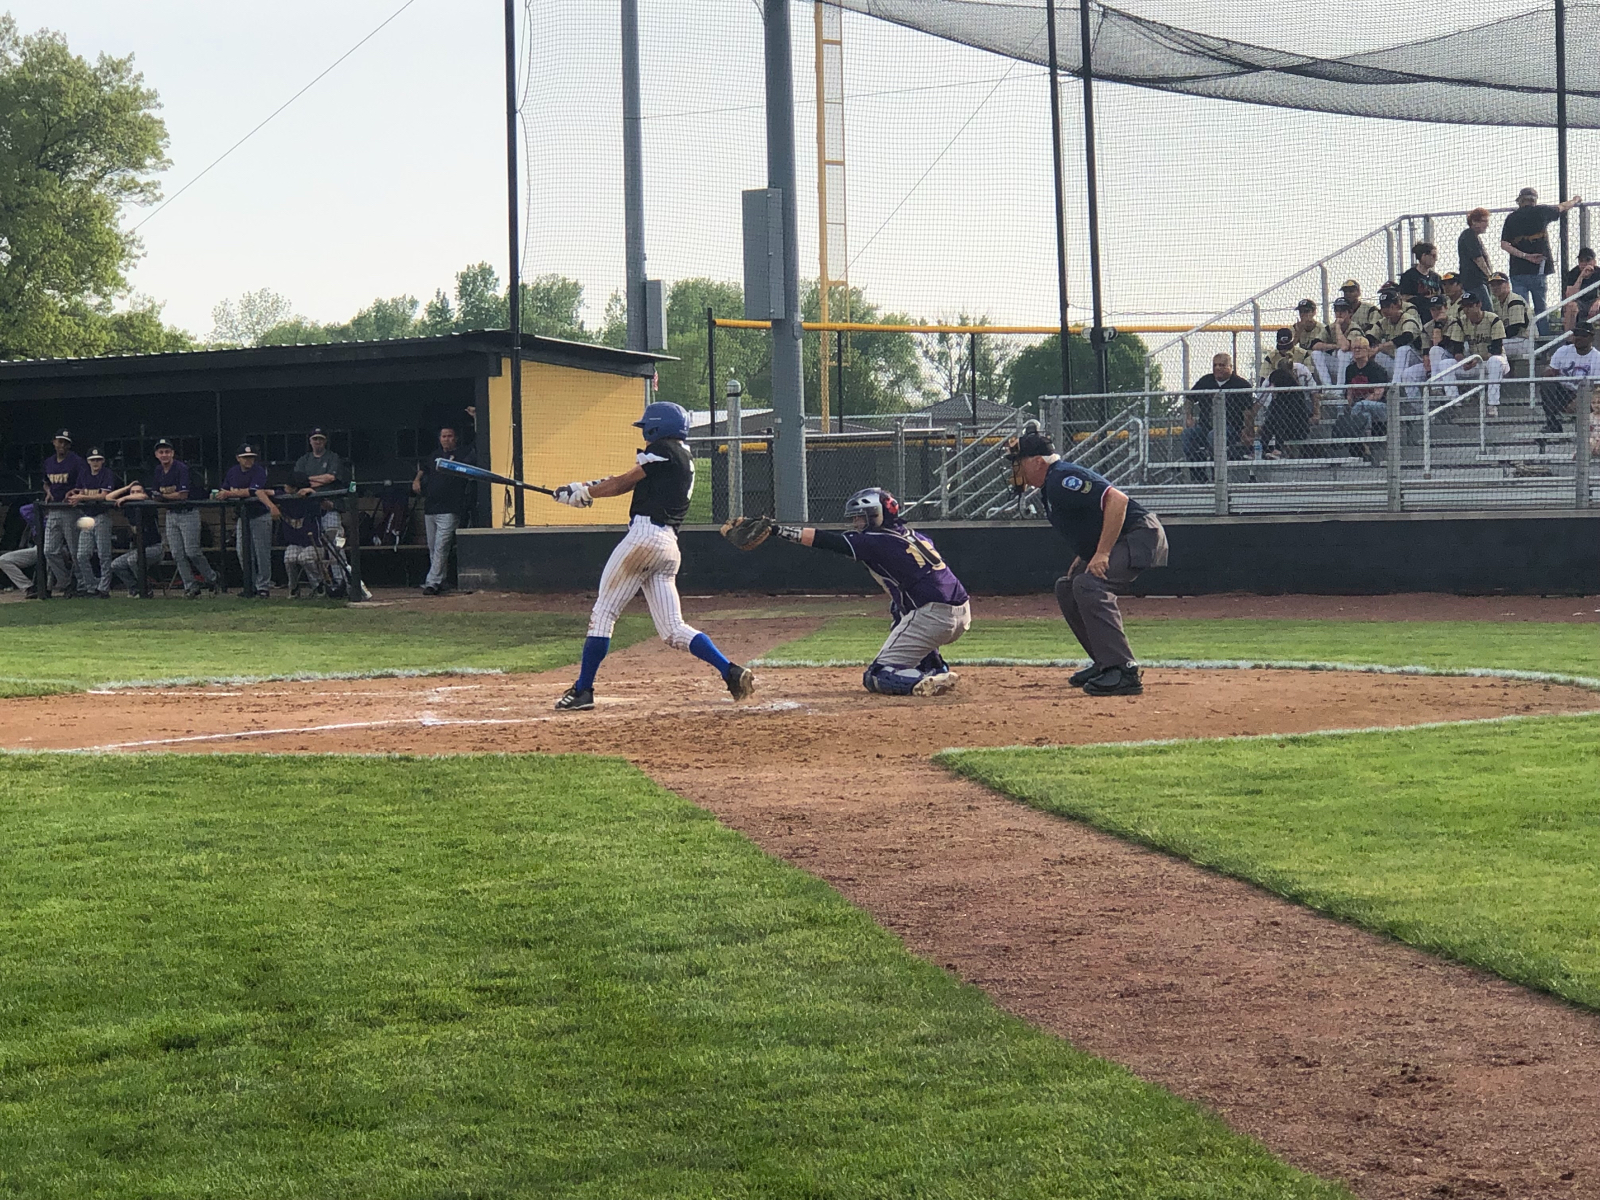 After 2 complete, Pioneers up on Gavit 3-0